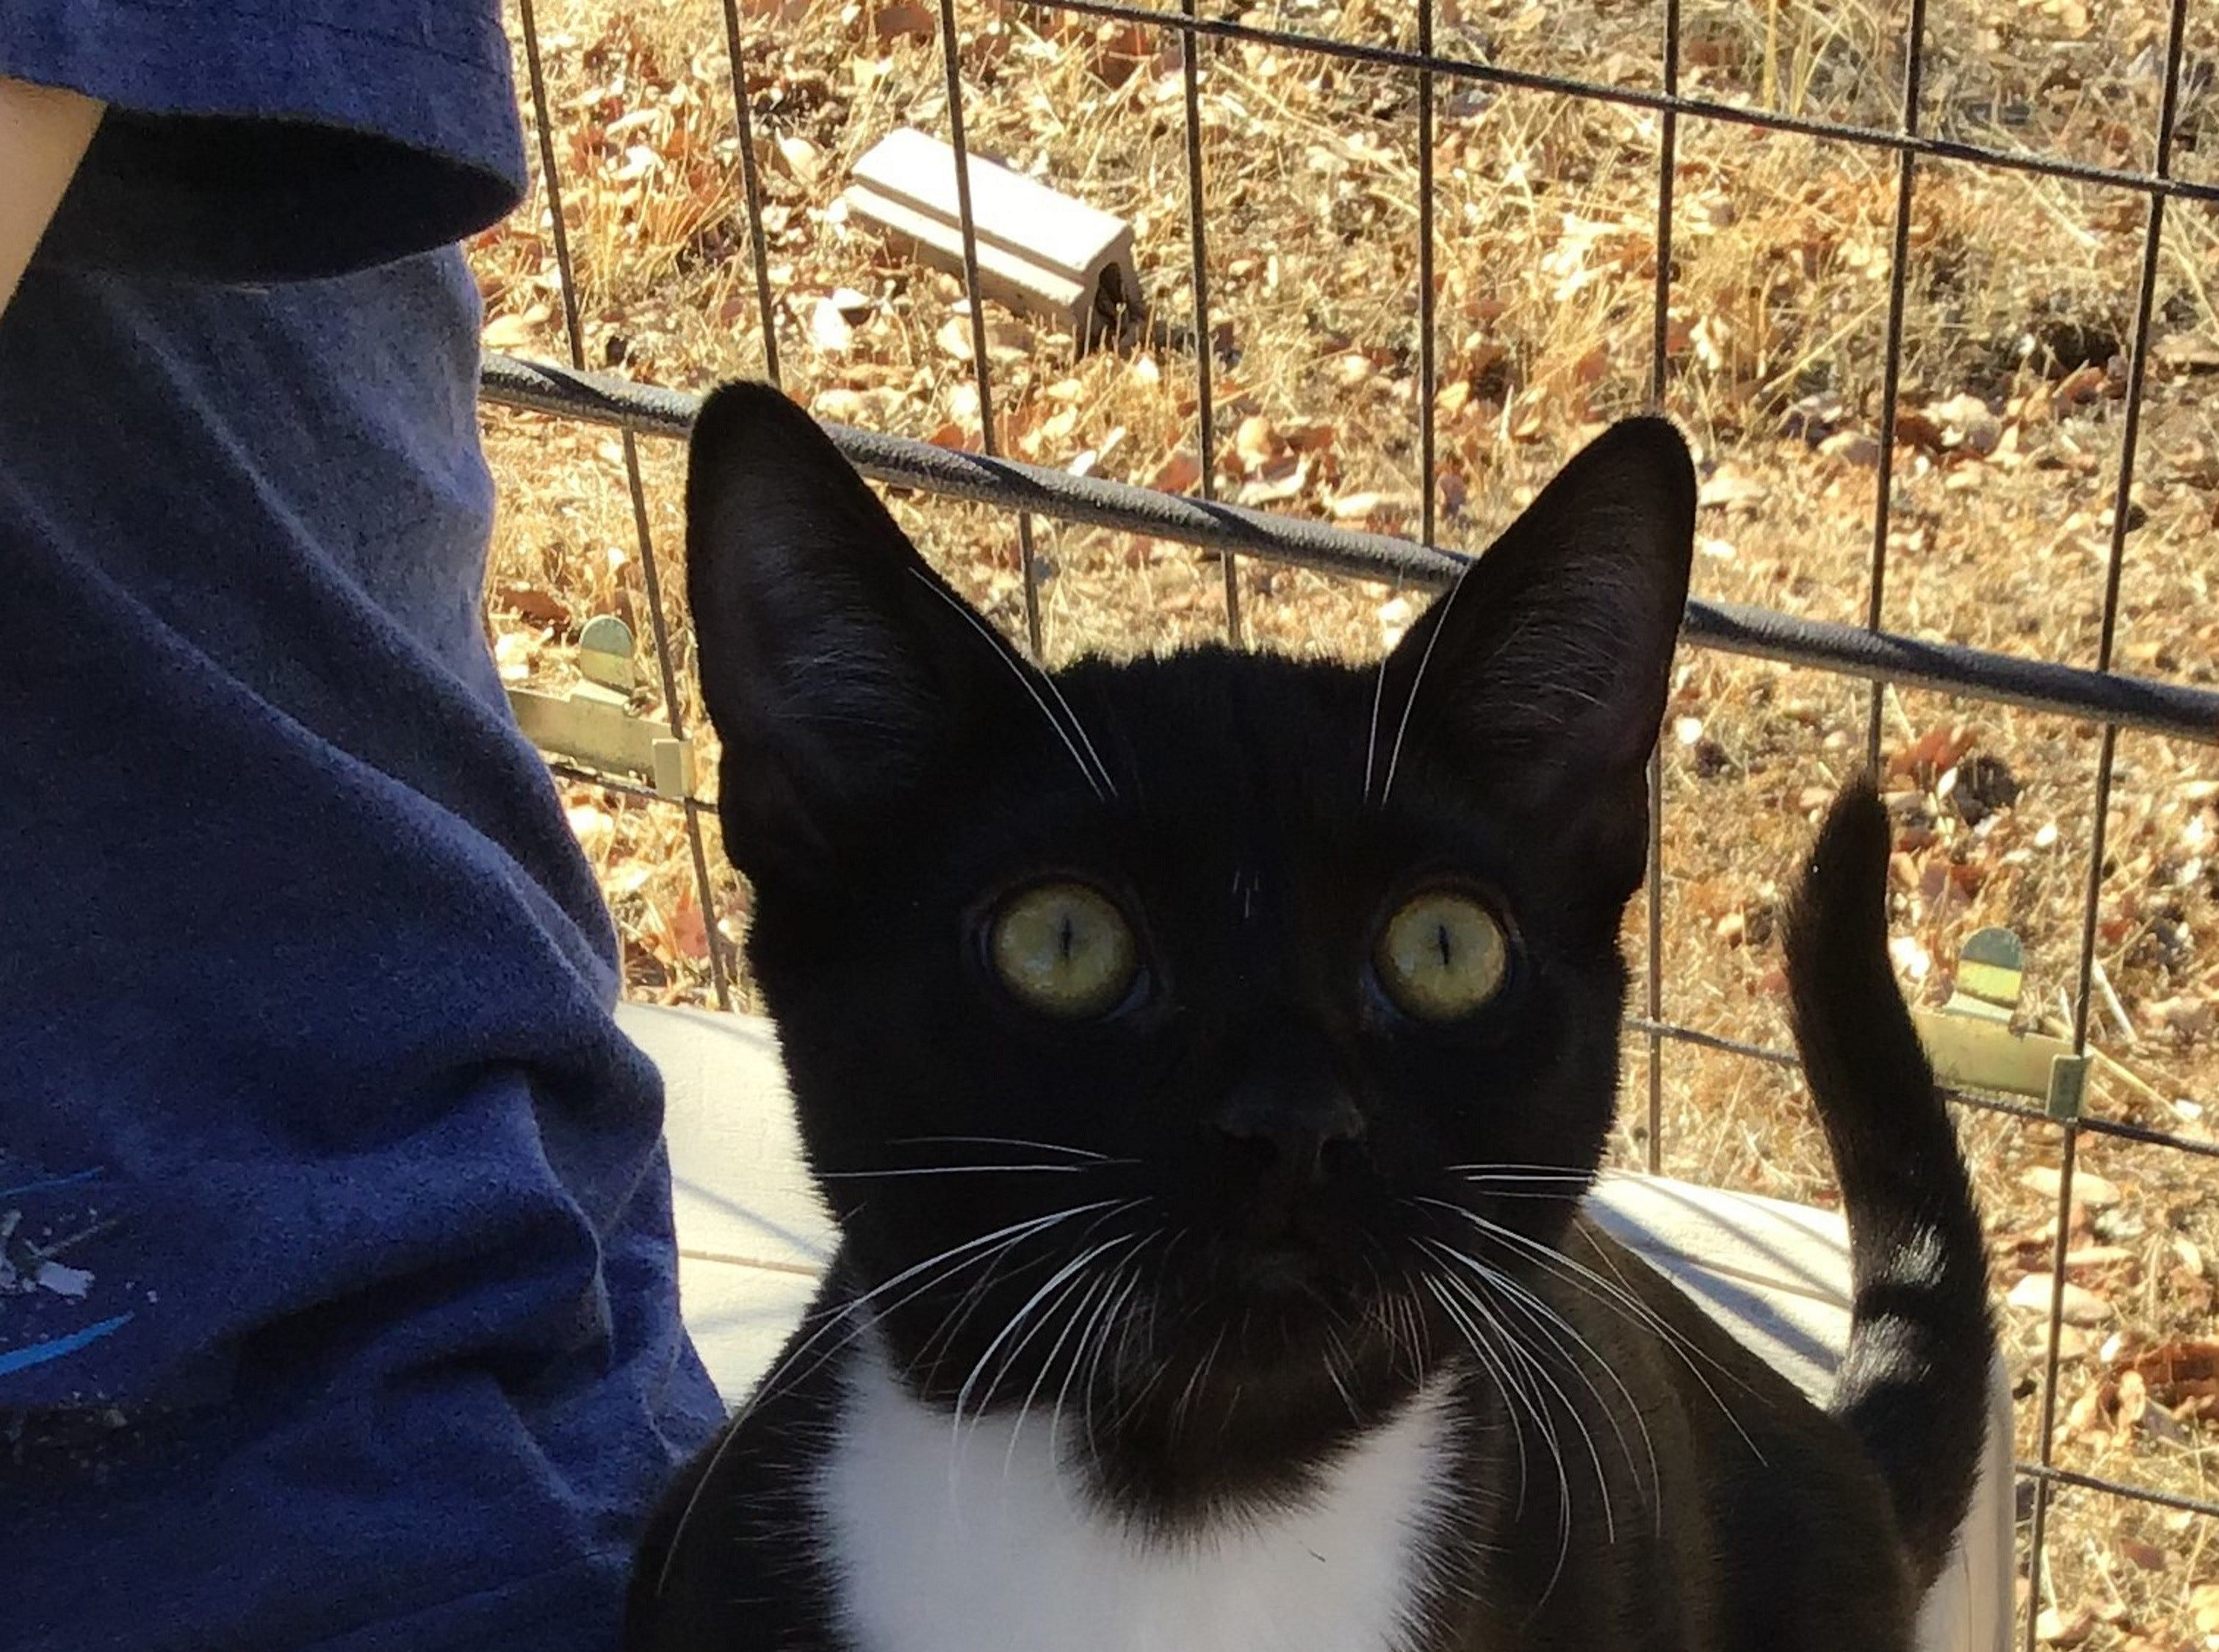 Espresso is a sweet, 9-month-old female kitten who's friendly and playful. She's a little shy when meeting new people, but once she's comfortable she really shines. Her fur is bunny-soft. Raining Cats N Dogs adoptions include spay/neuter services, vaccines and vetting as needed. Call 232-6299. Go to http://rainingcatsndogs.rescuegroups.org.